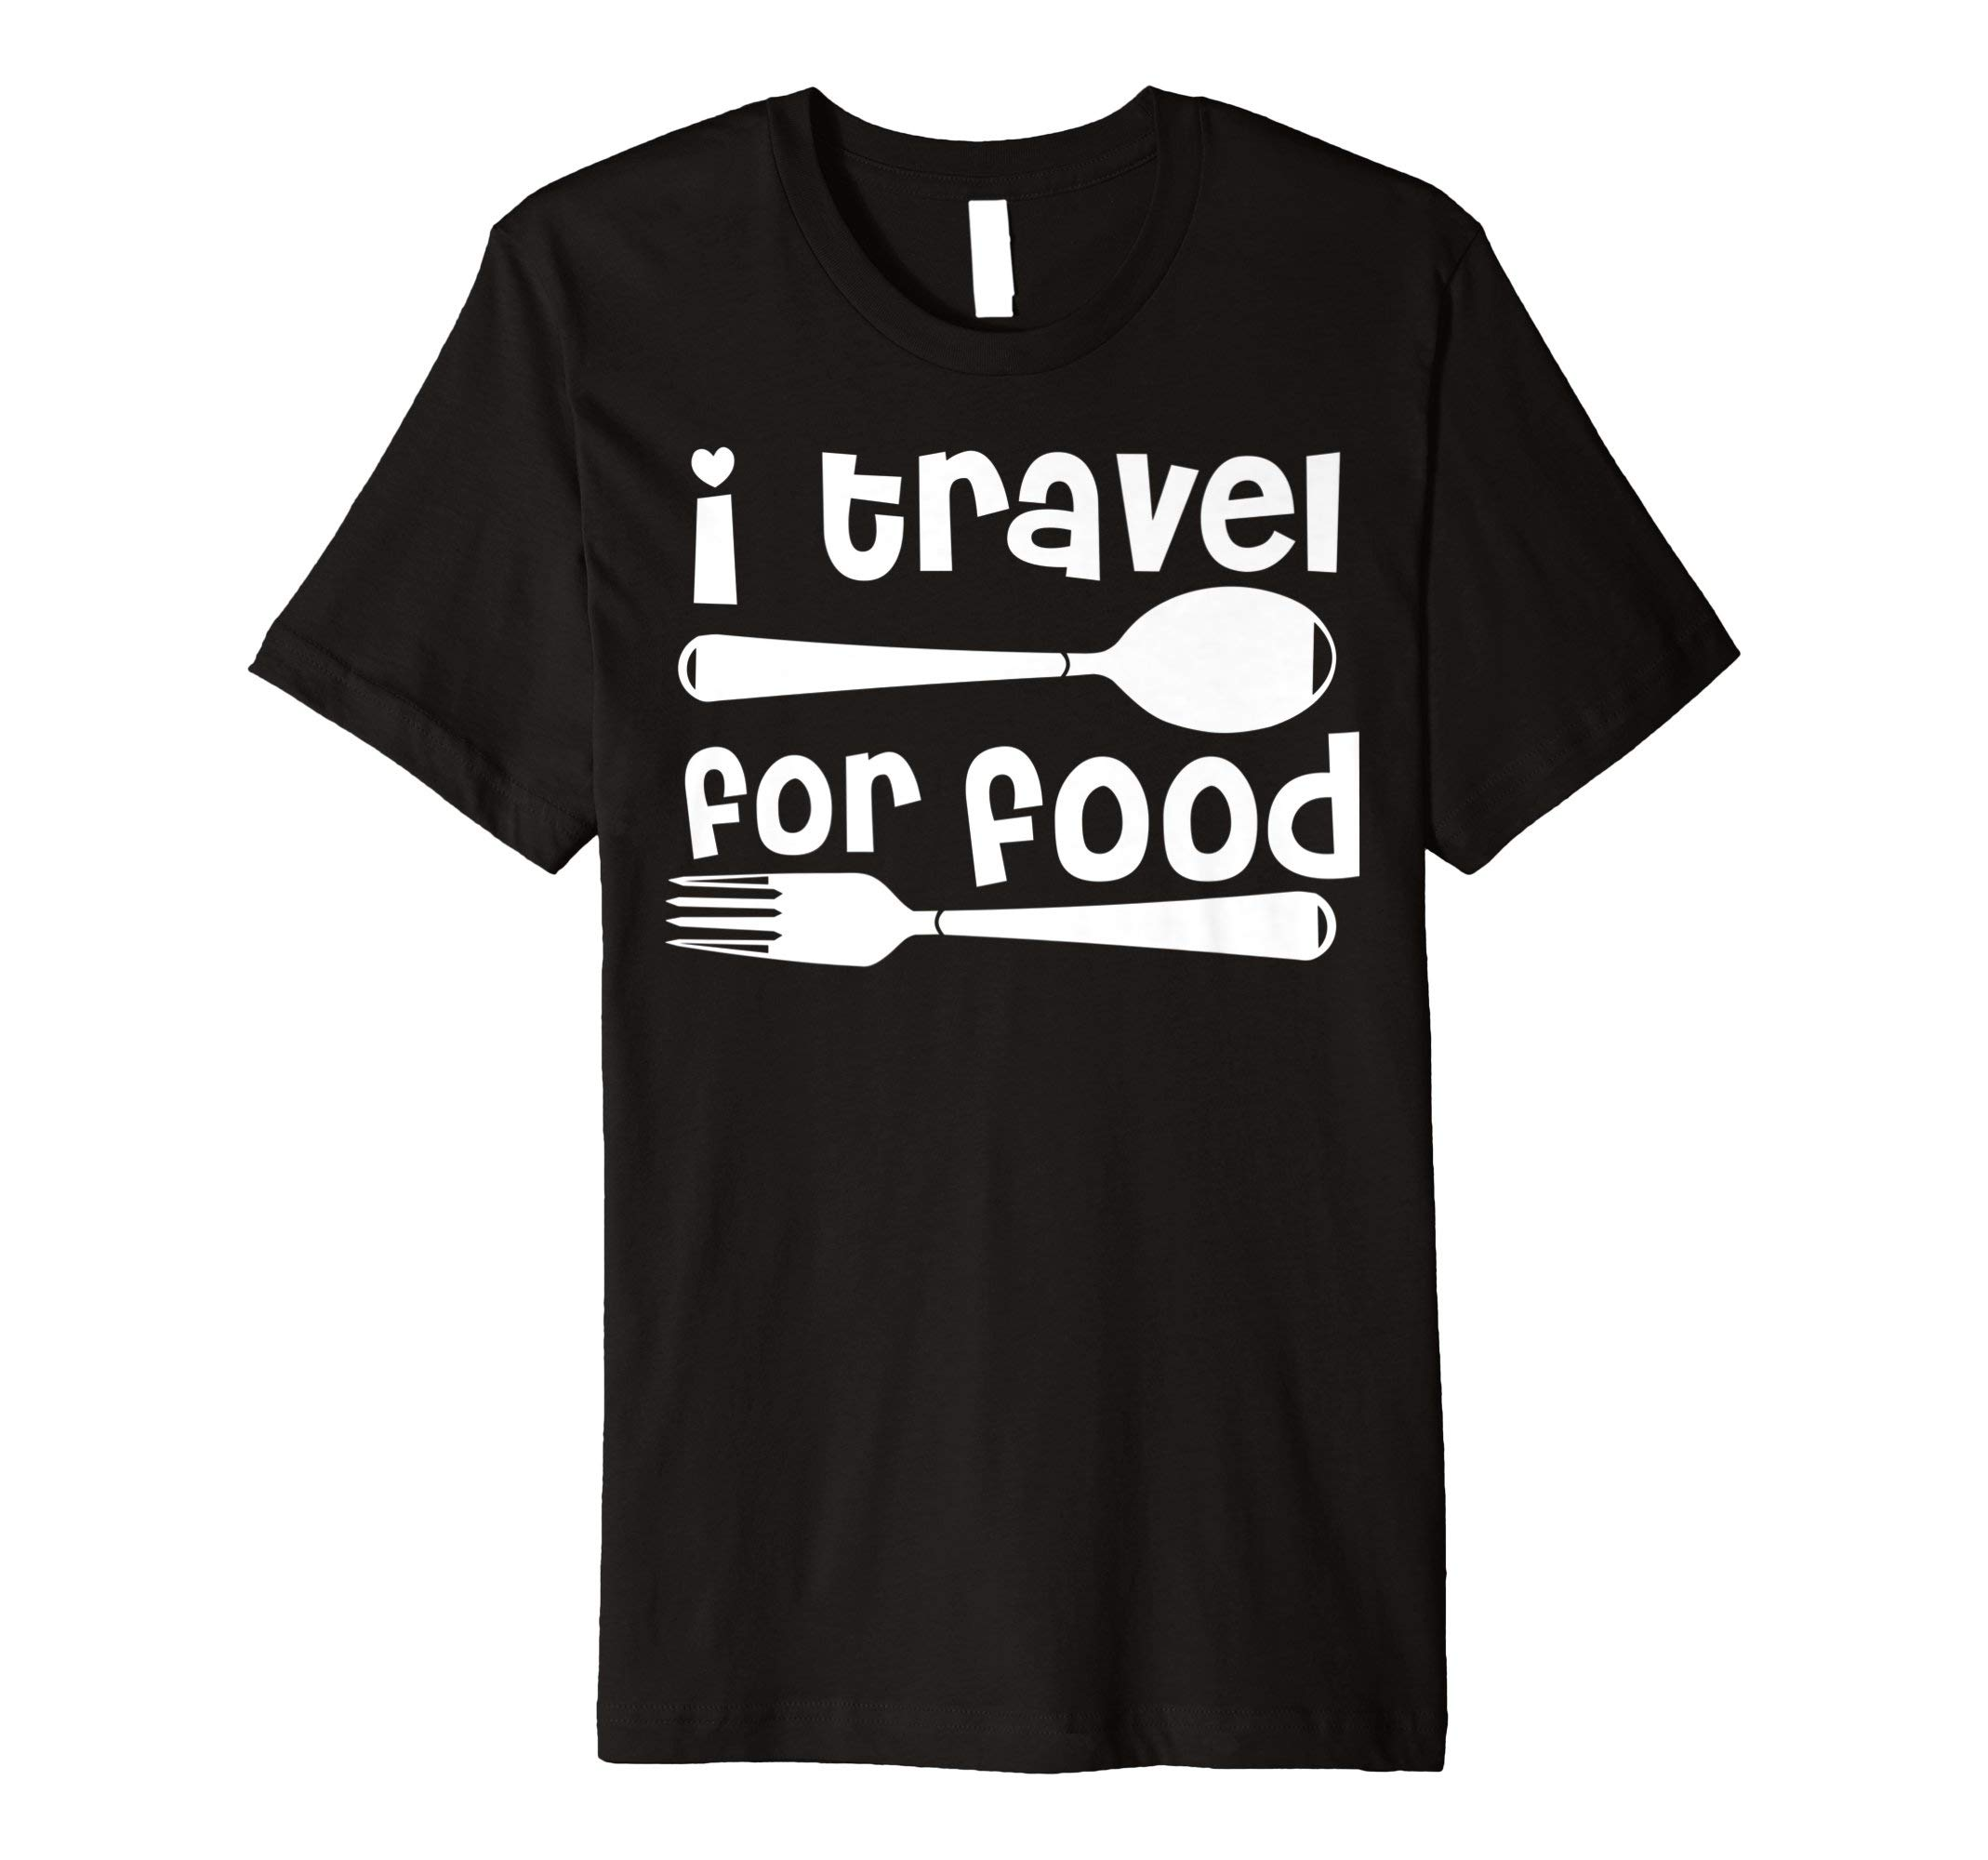 I Travel for Food T-Shirt Food Lover Foddie Traveler Gift by Travel Foodie Tee Shirt (Image #1)